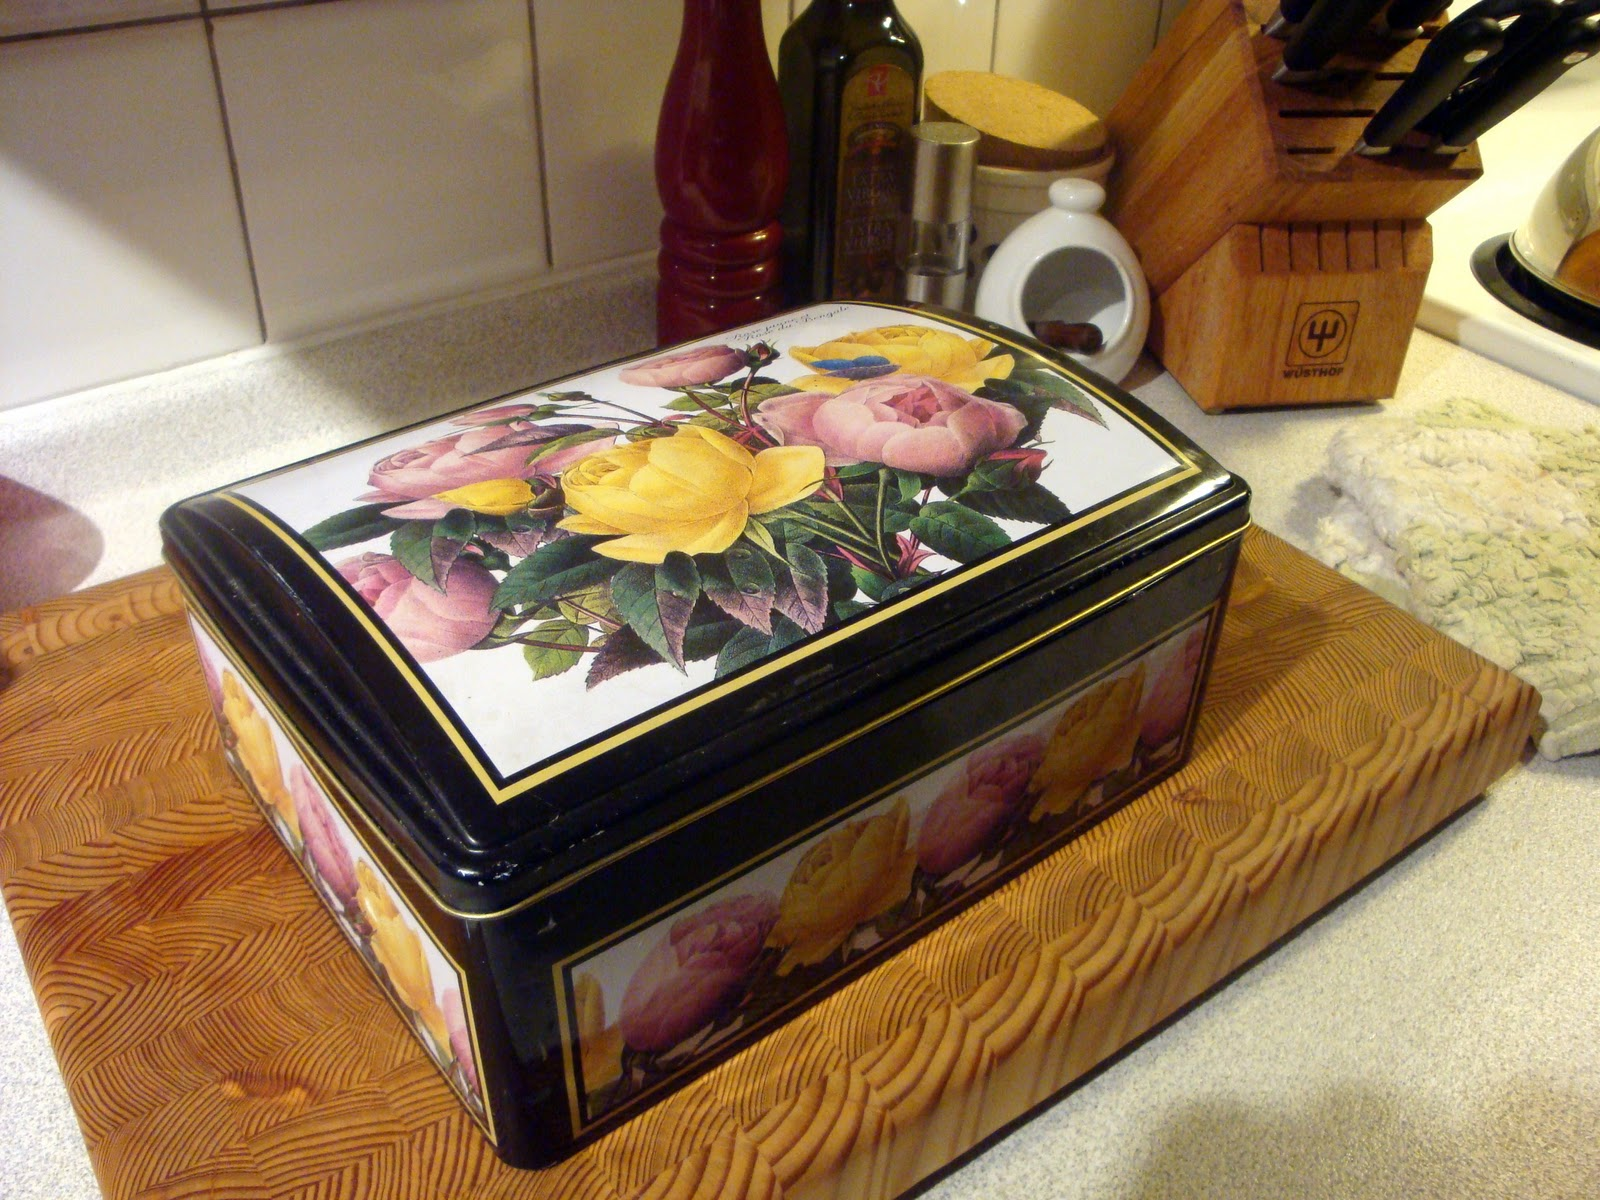 the original big ring pandora s cookie box contest pandora s box is an artifact in greek mythology taken from the myth of pandora s creation when pandora opened the box the entire contents of the jar were